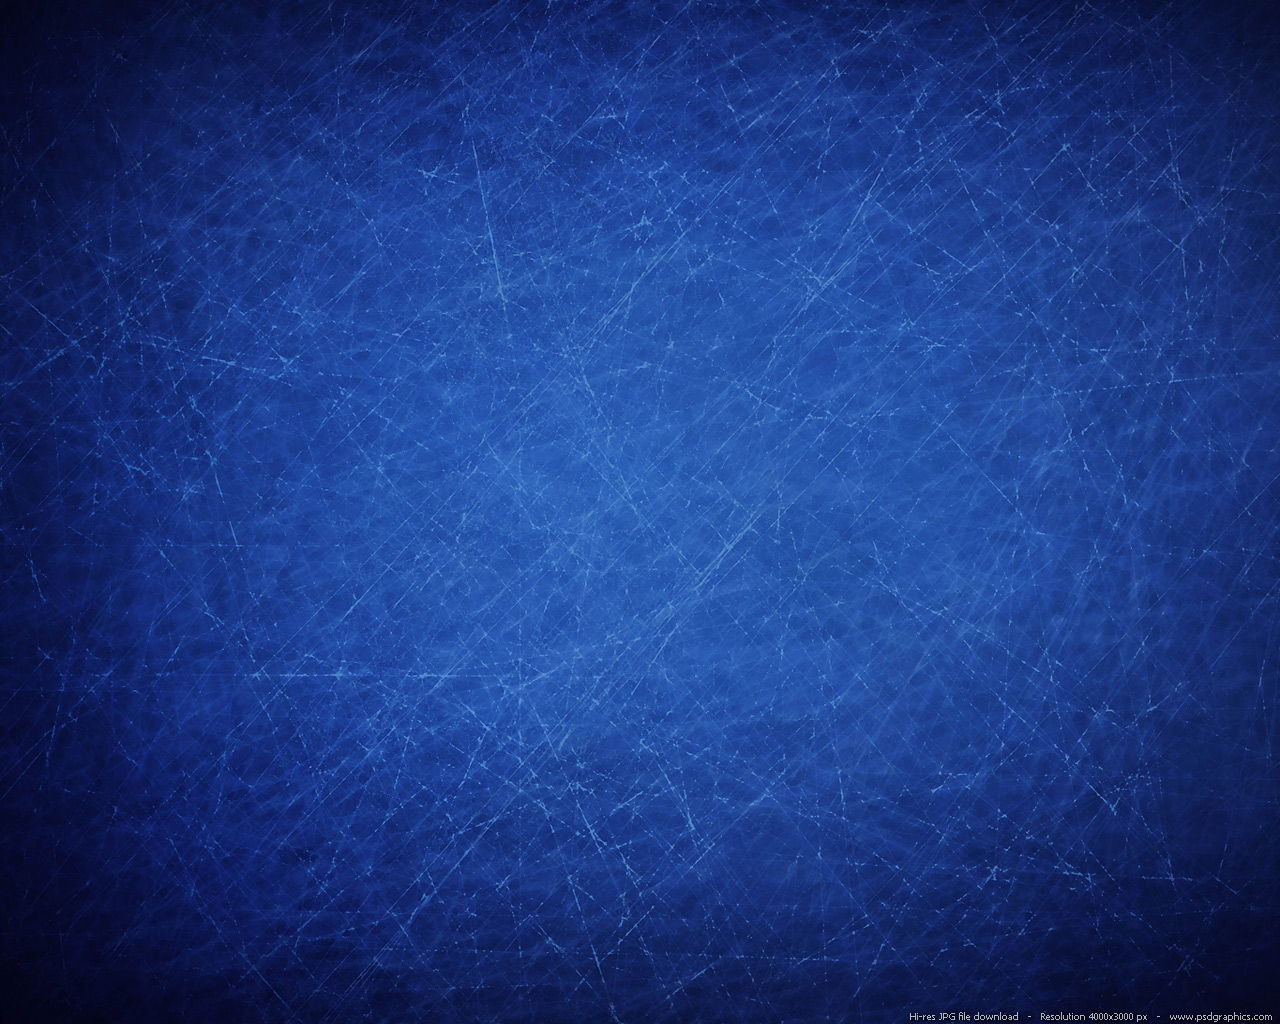 Scratched dark grunge texture, retro backgrounds | PSDGraphics: www.psdgraphics.com/backgrounds/scratched-dark-grunge-texture-retro...